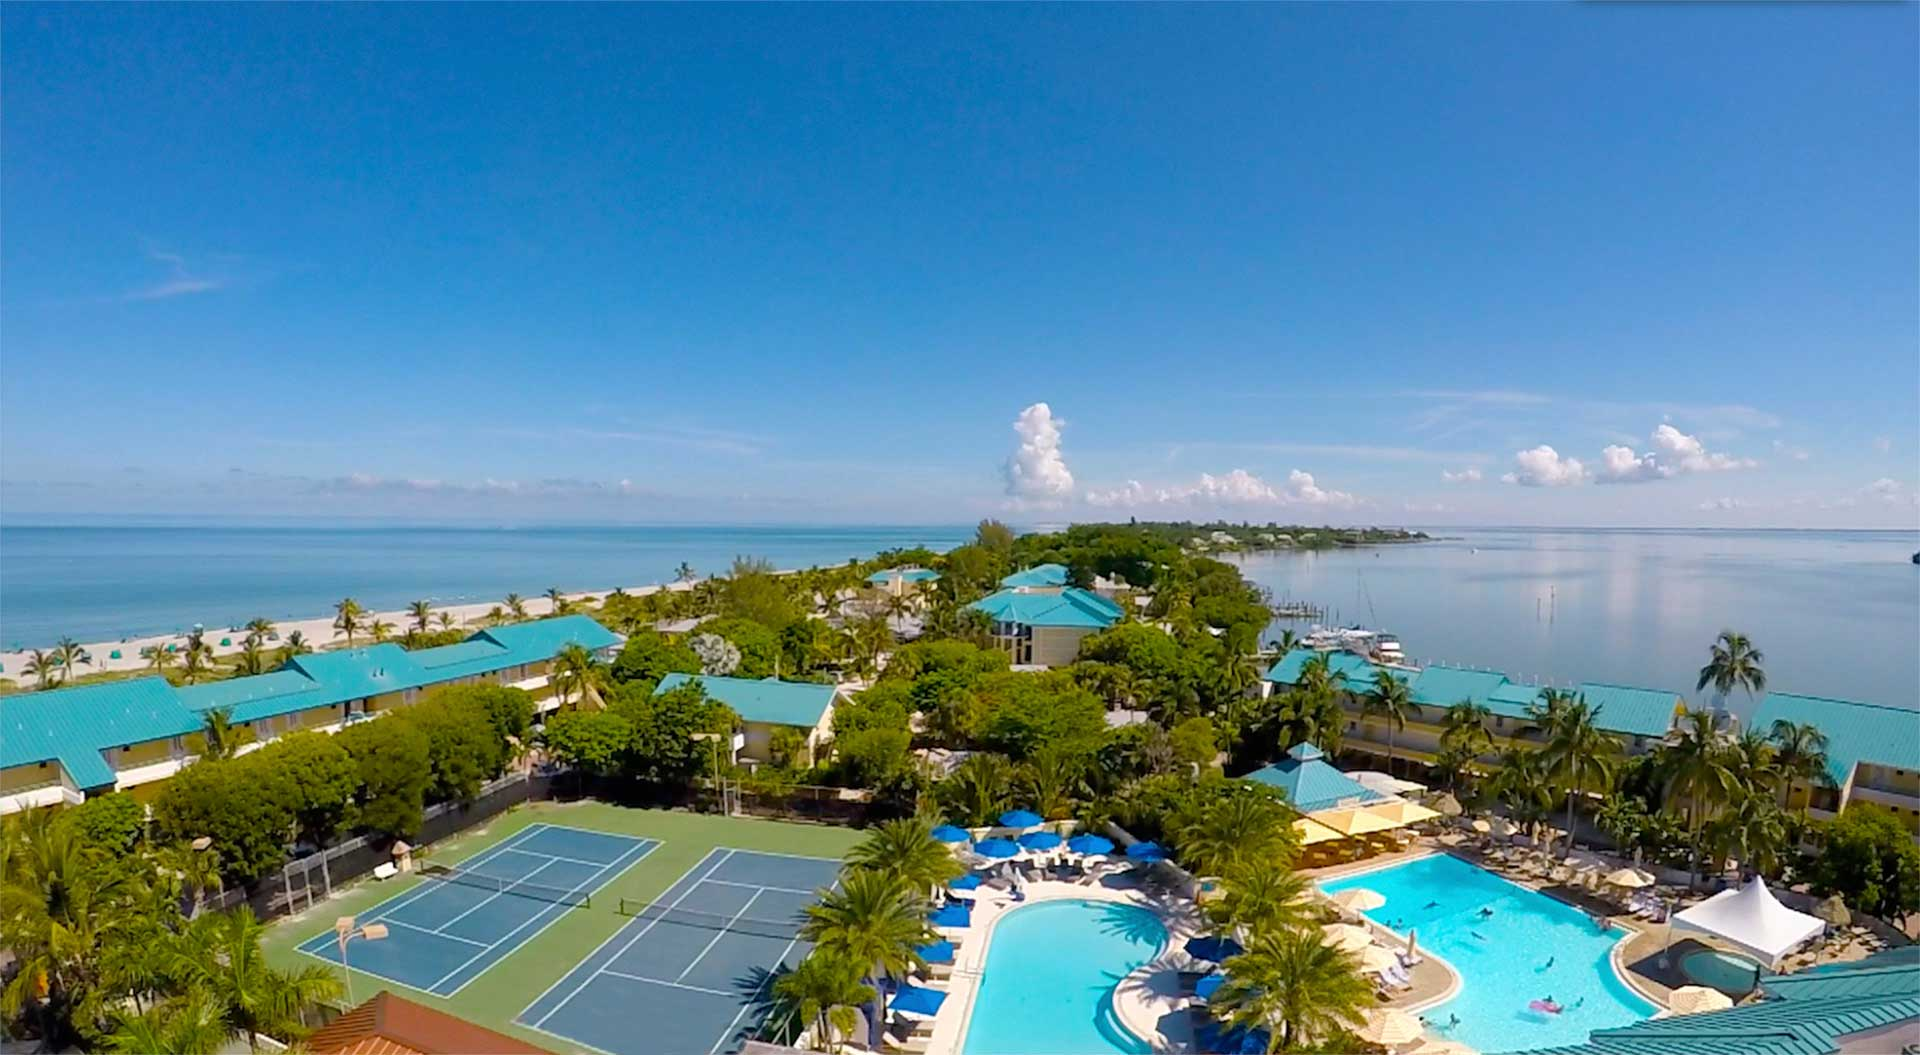 Best resort on Captiva Island